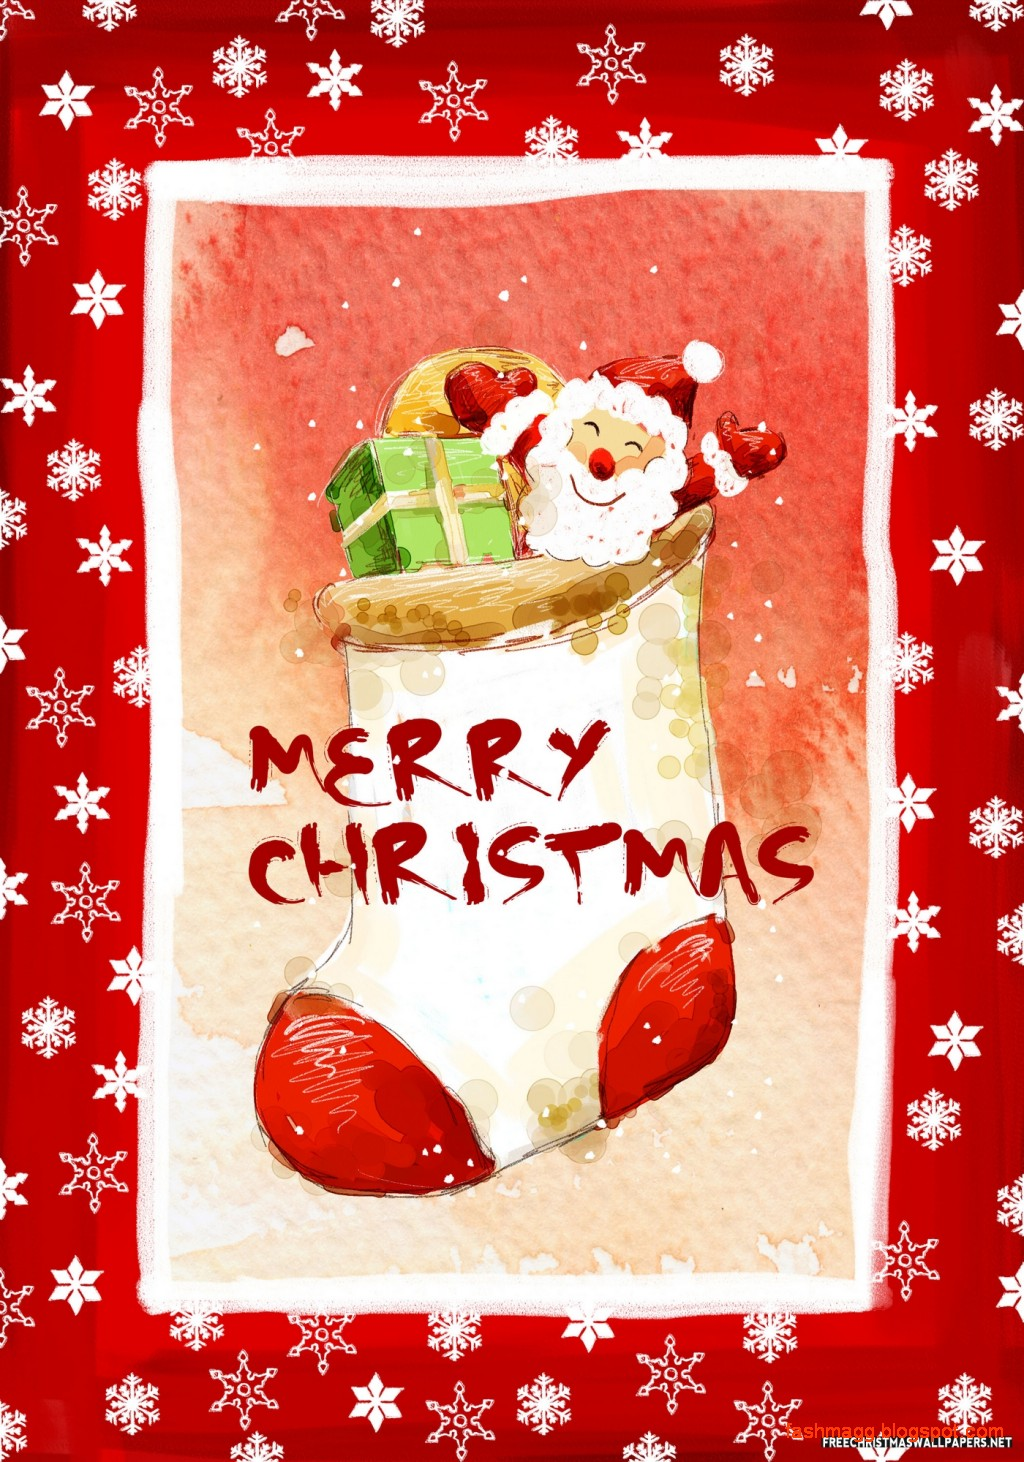 Merry Christmas X-Mass Greeting Cards Pictures-Christmas Cards Ideas-Gifts-Images-Photos12